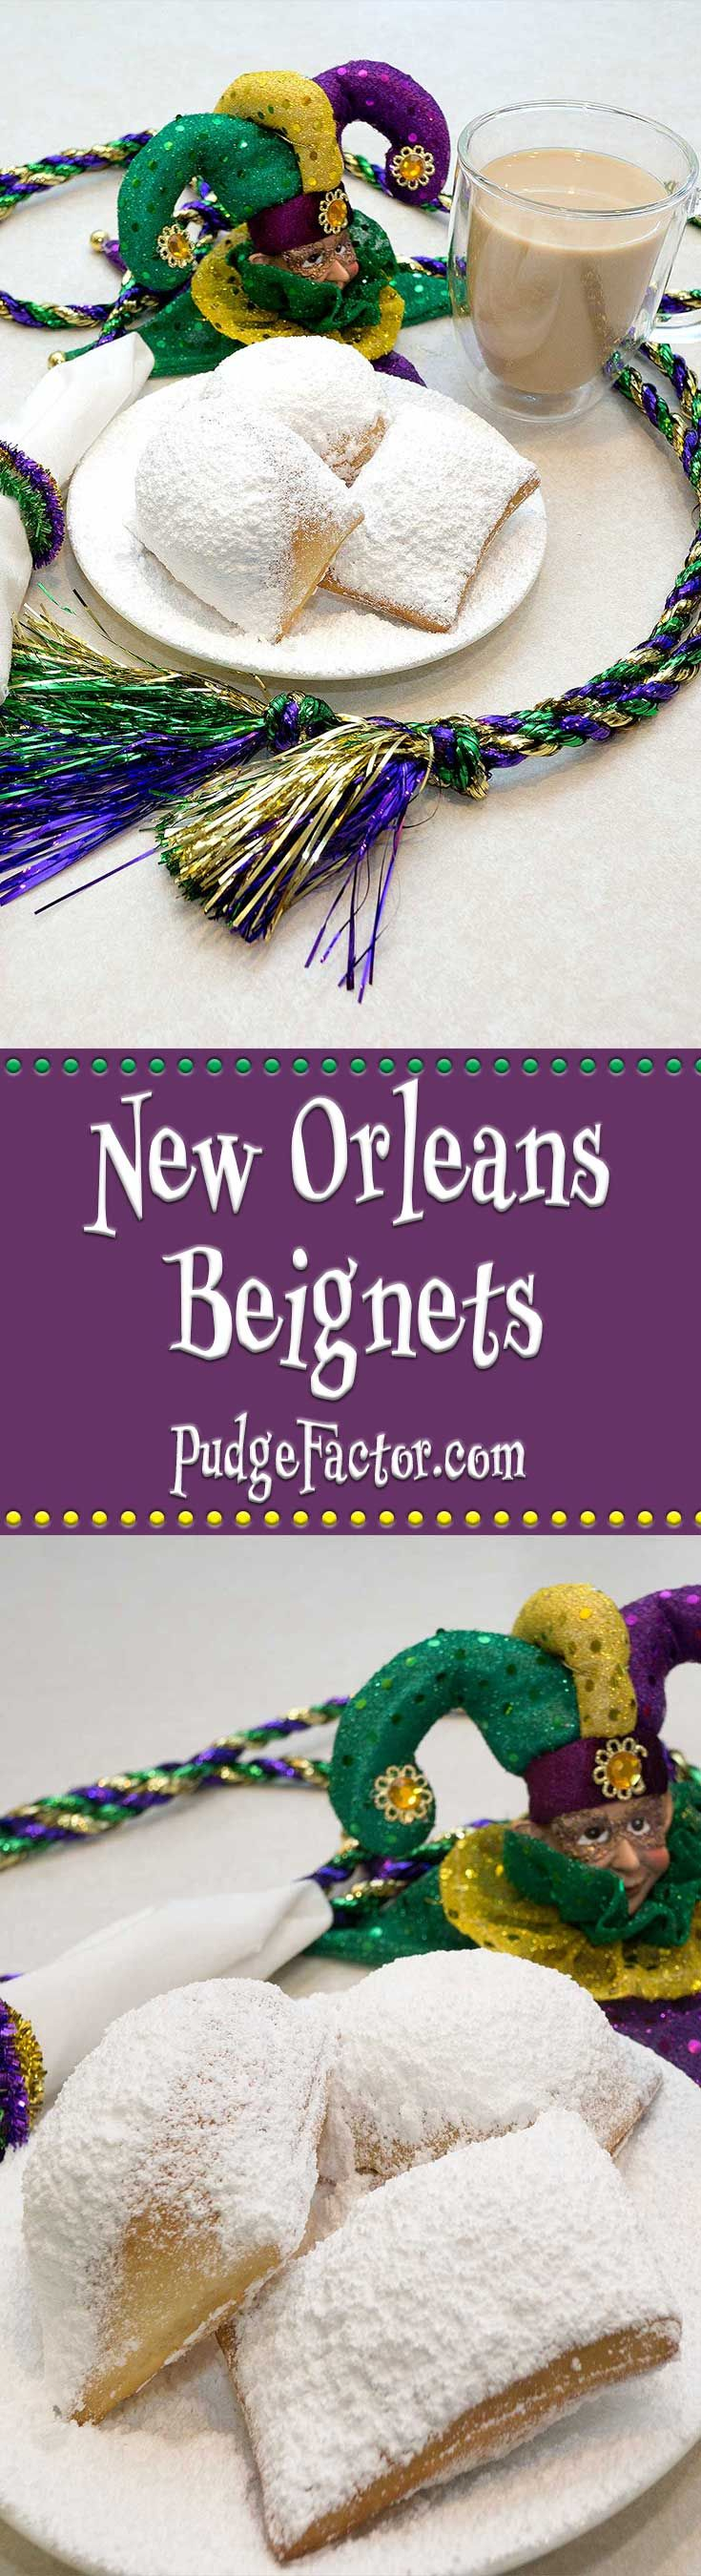 Beignets are a fried yeasted dough sprinkled with confectioner's sugar. They are traditionally eaten fresh & hot. via @c2king